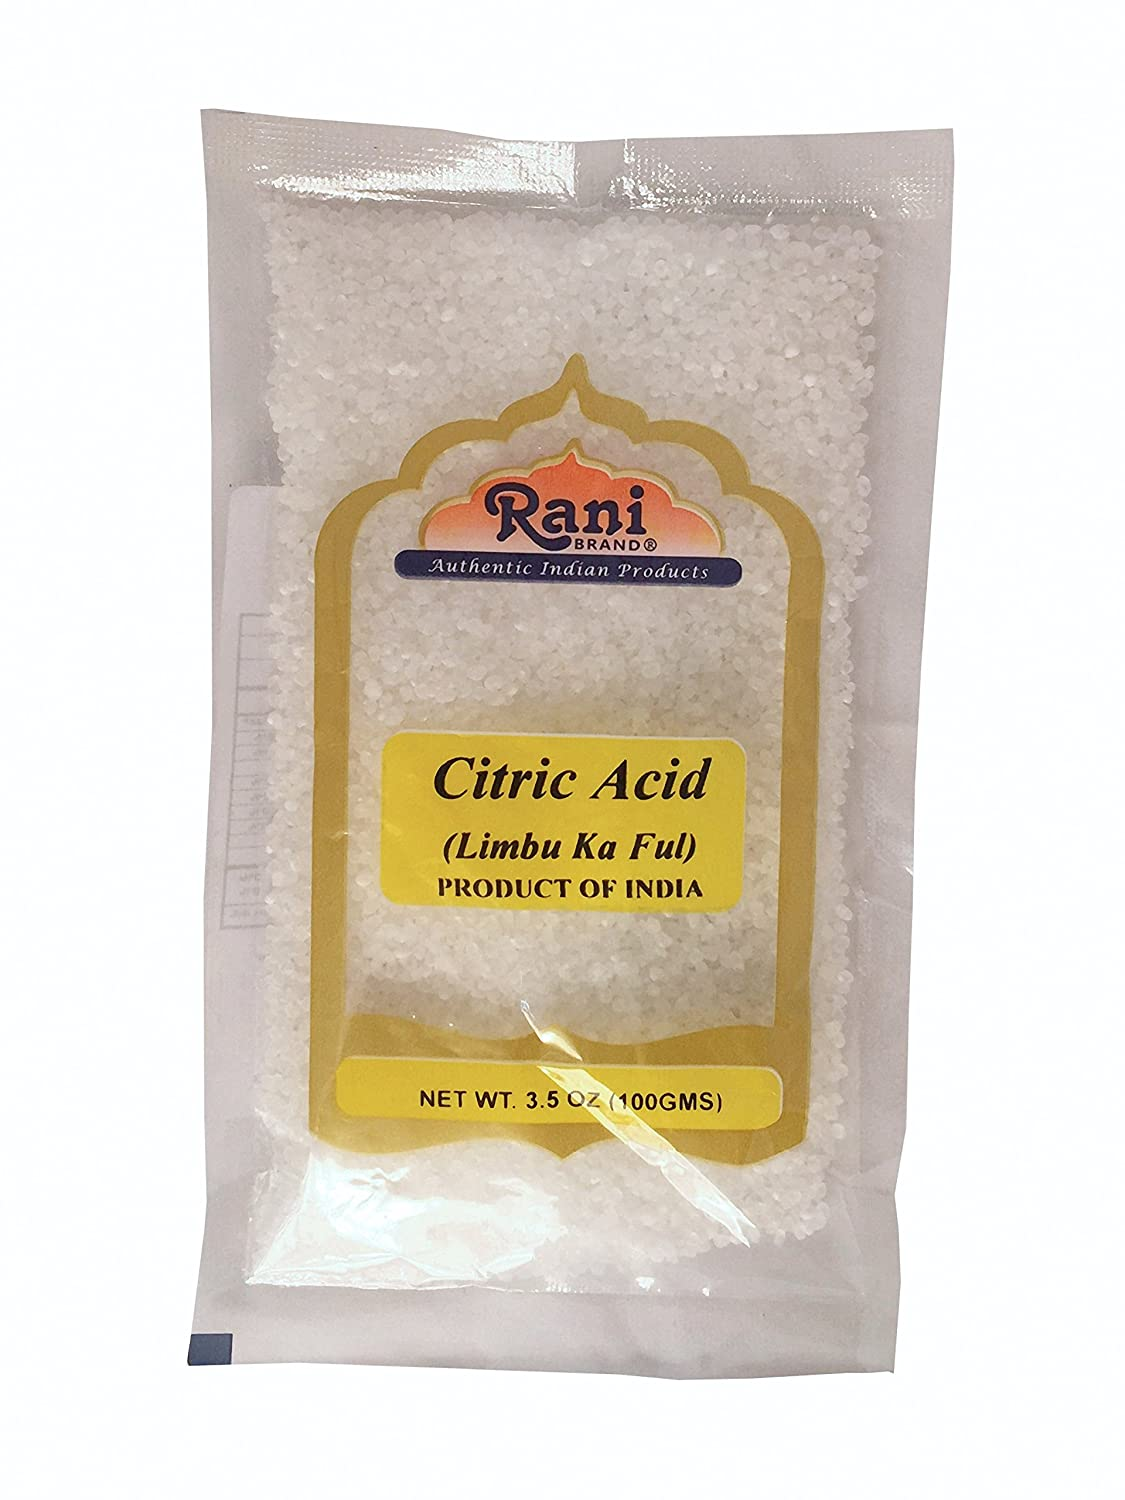 Rani Citric Acid Powder, Food Grade (Limbu Ka Ful) 3.5oz (100g) ~ Used for cooking, bath bombs, cleaning | Indian Origin | Gluten Free